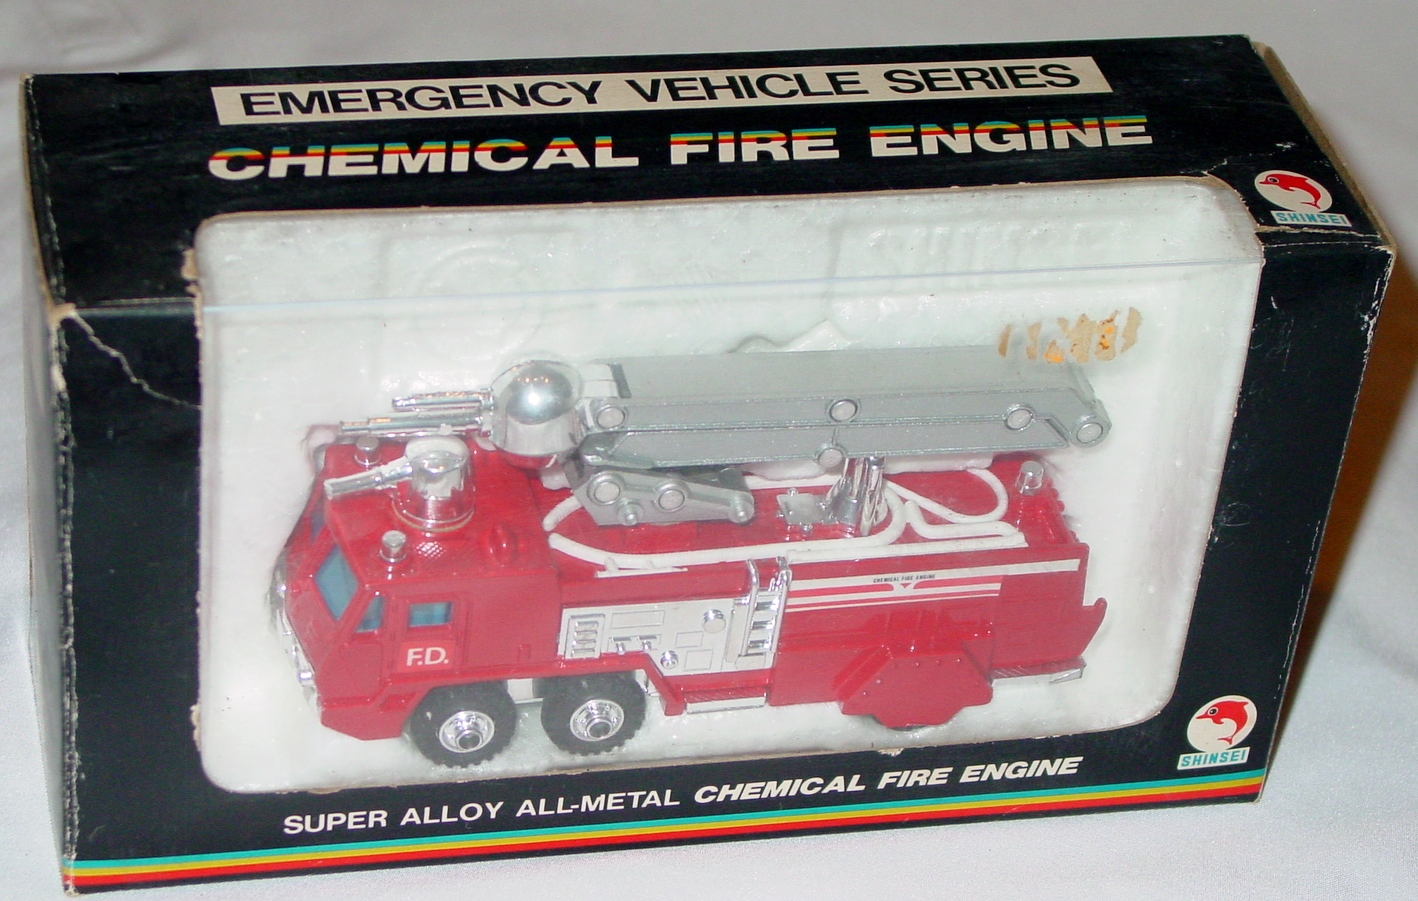 78 - SHINSEI 4108 Chemical Fire Engine Red window box